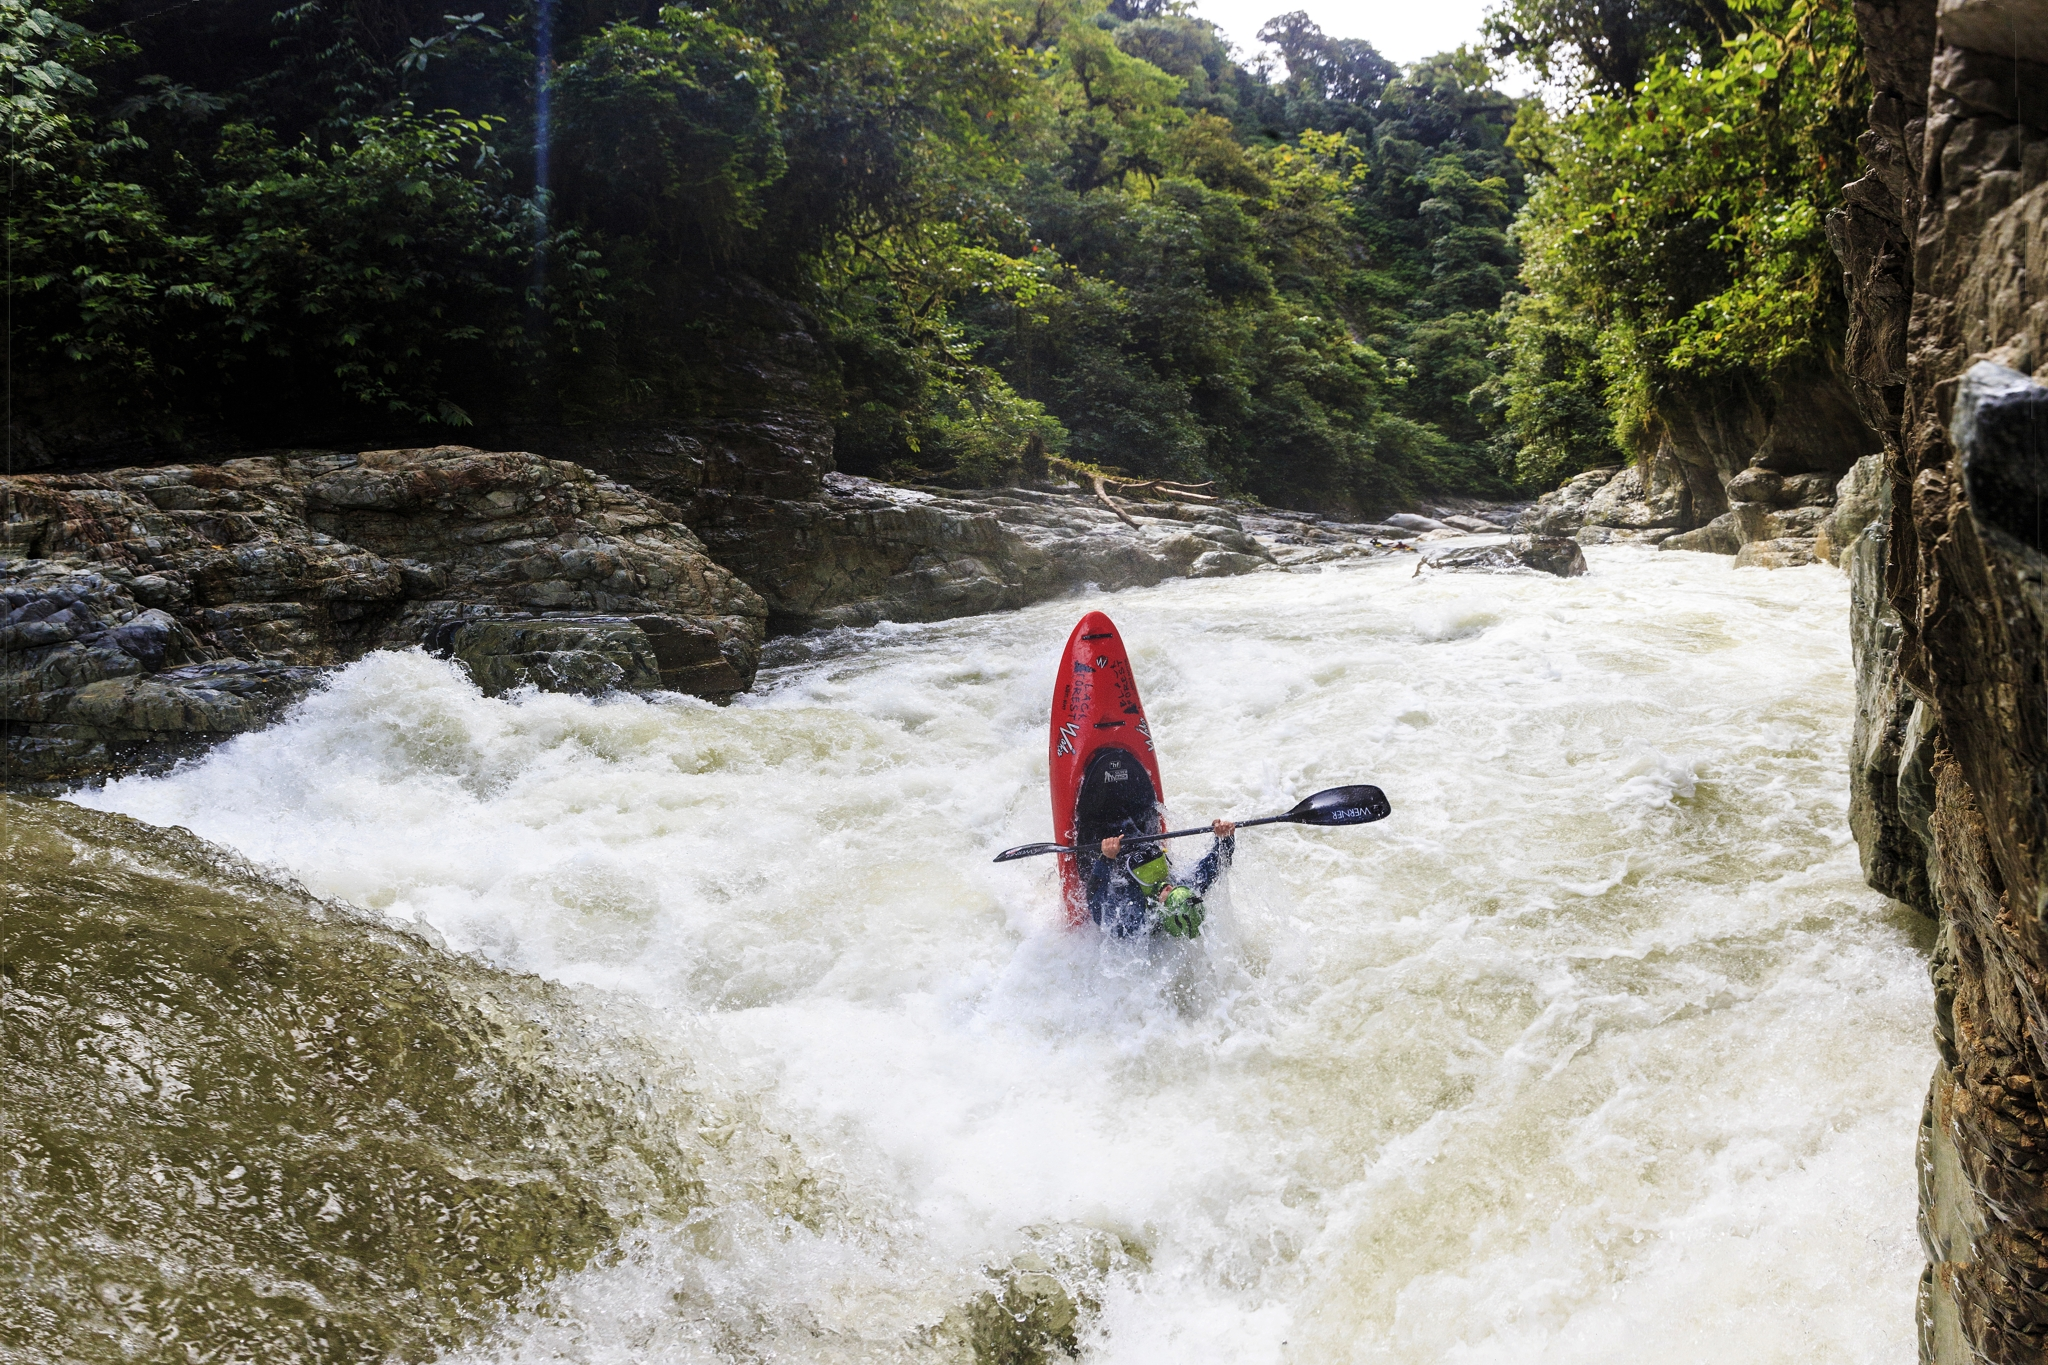 Marcus Bottler in the Rio Cofanes High water.